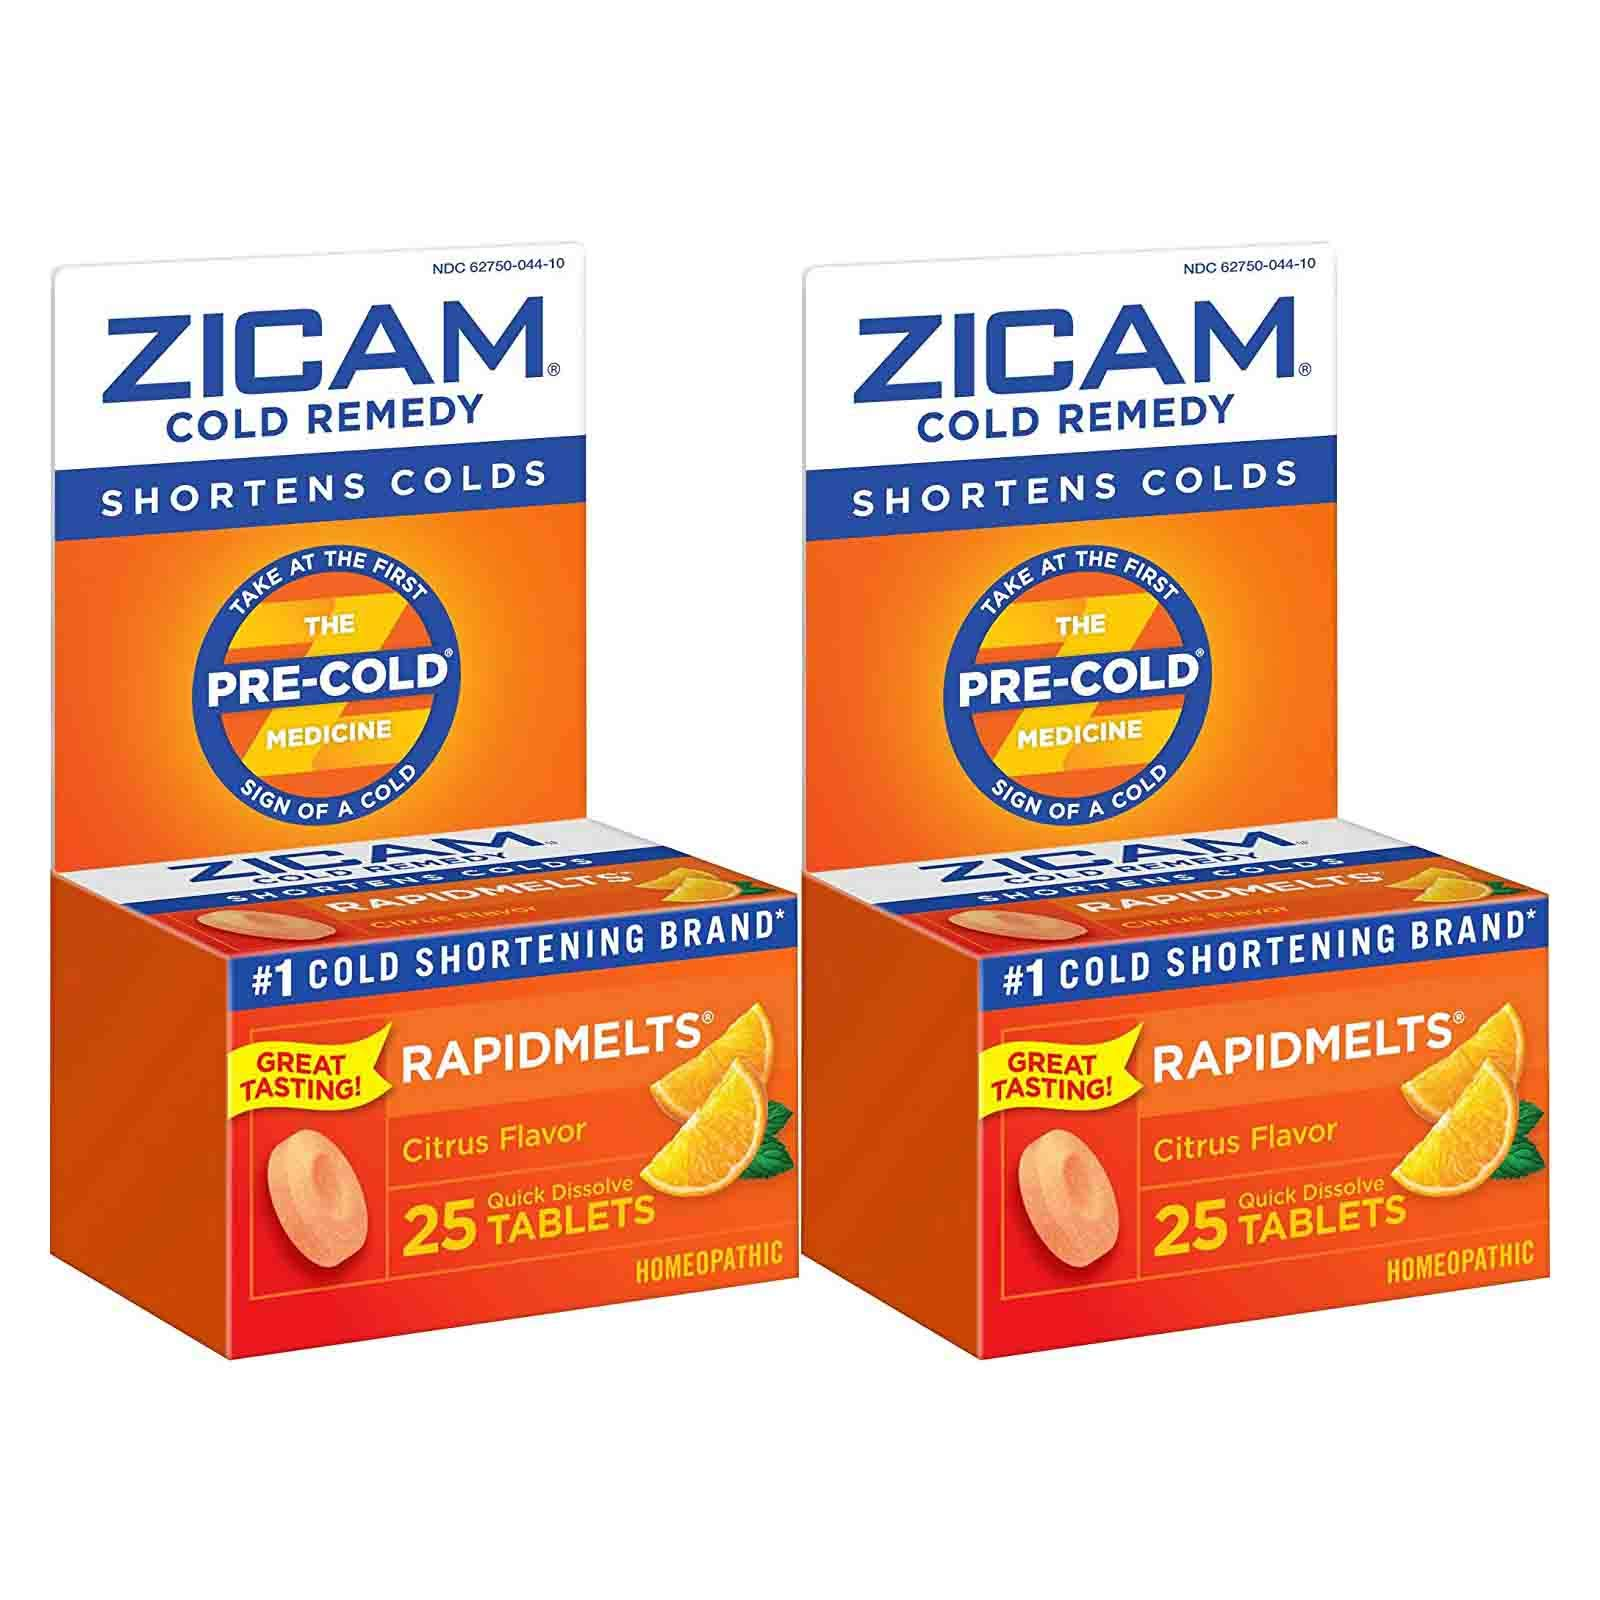 Zicam Cold Remedy Rapidmelts, Citrus Flavor, Quick-Dissolve Tablets, 25 Count, Pack of 2 by Zicam